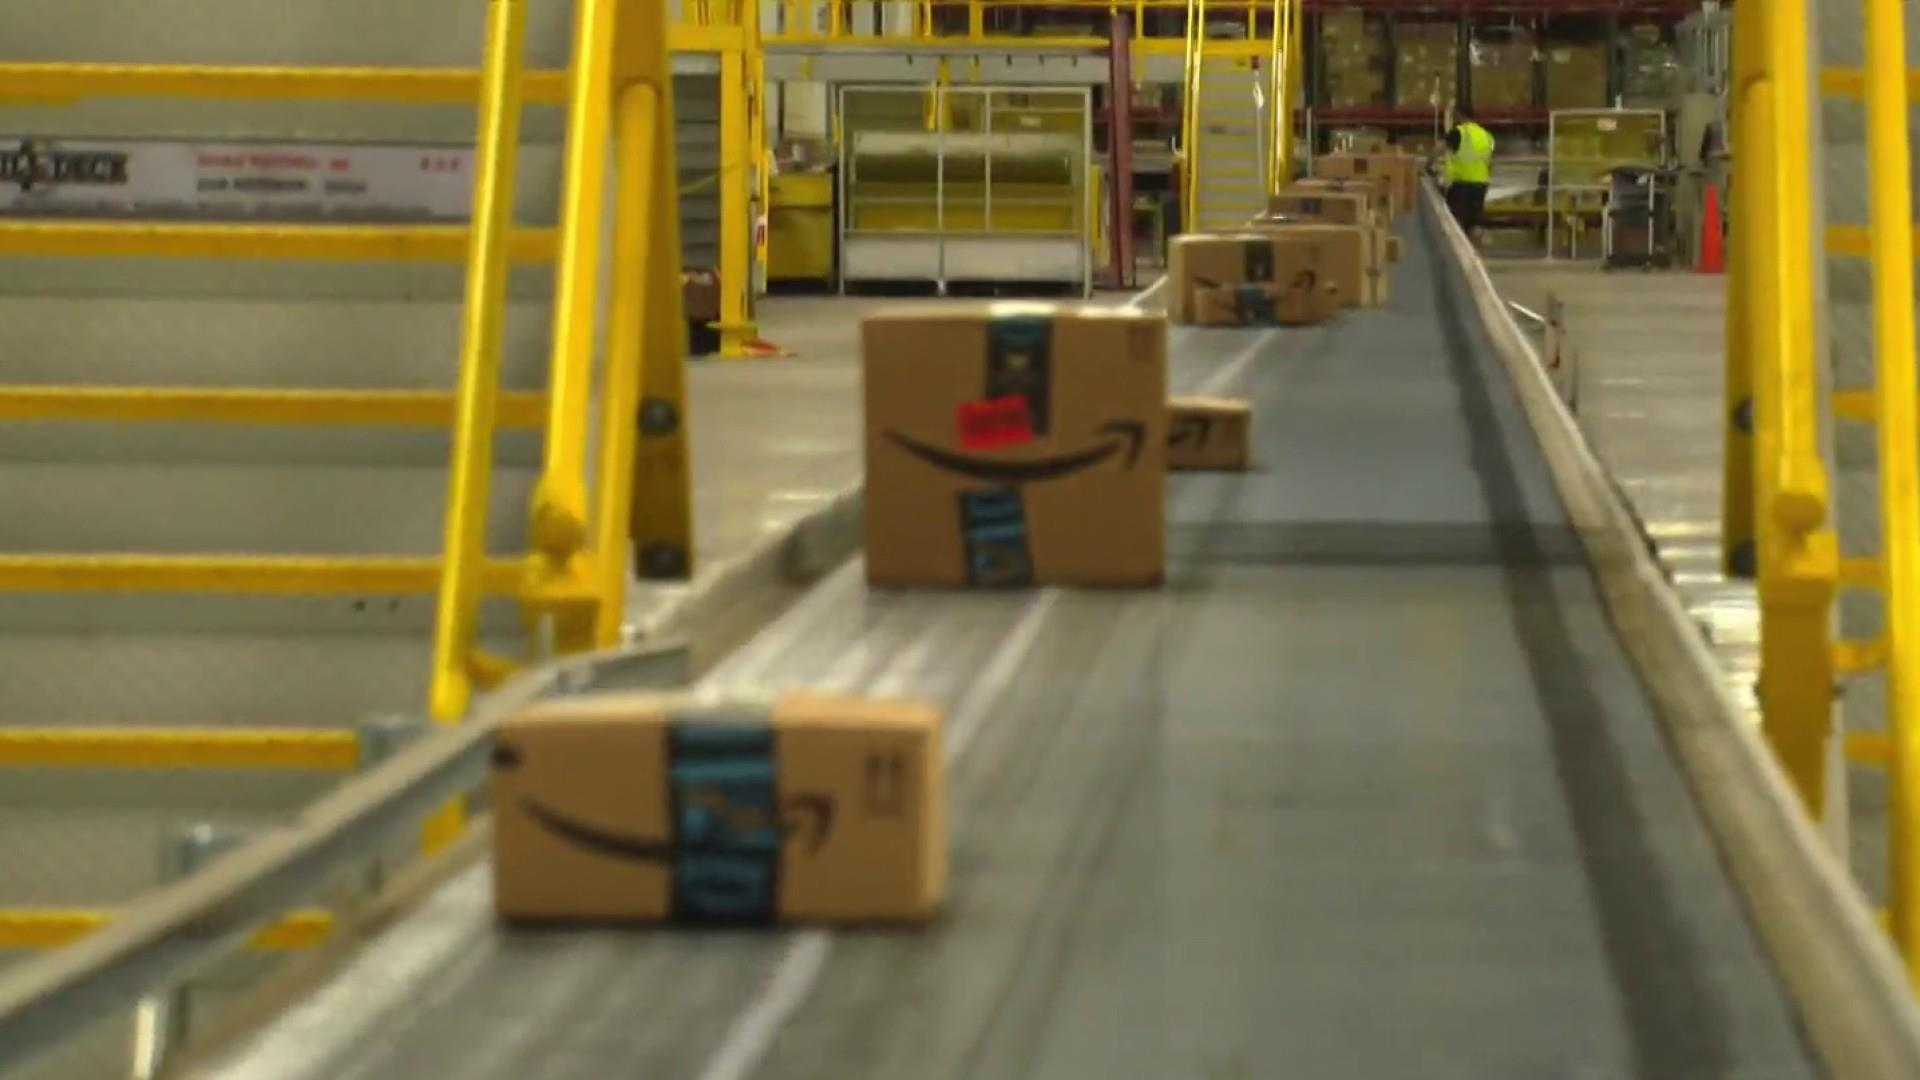 Amazon employees speak out about workplace conditions